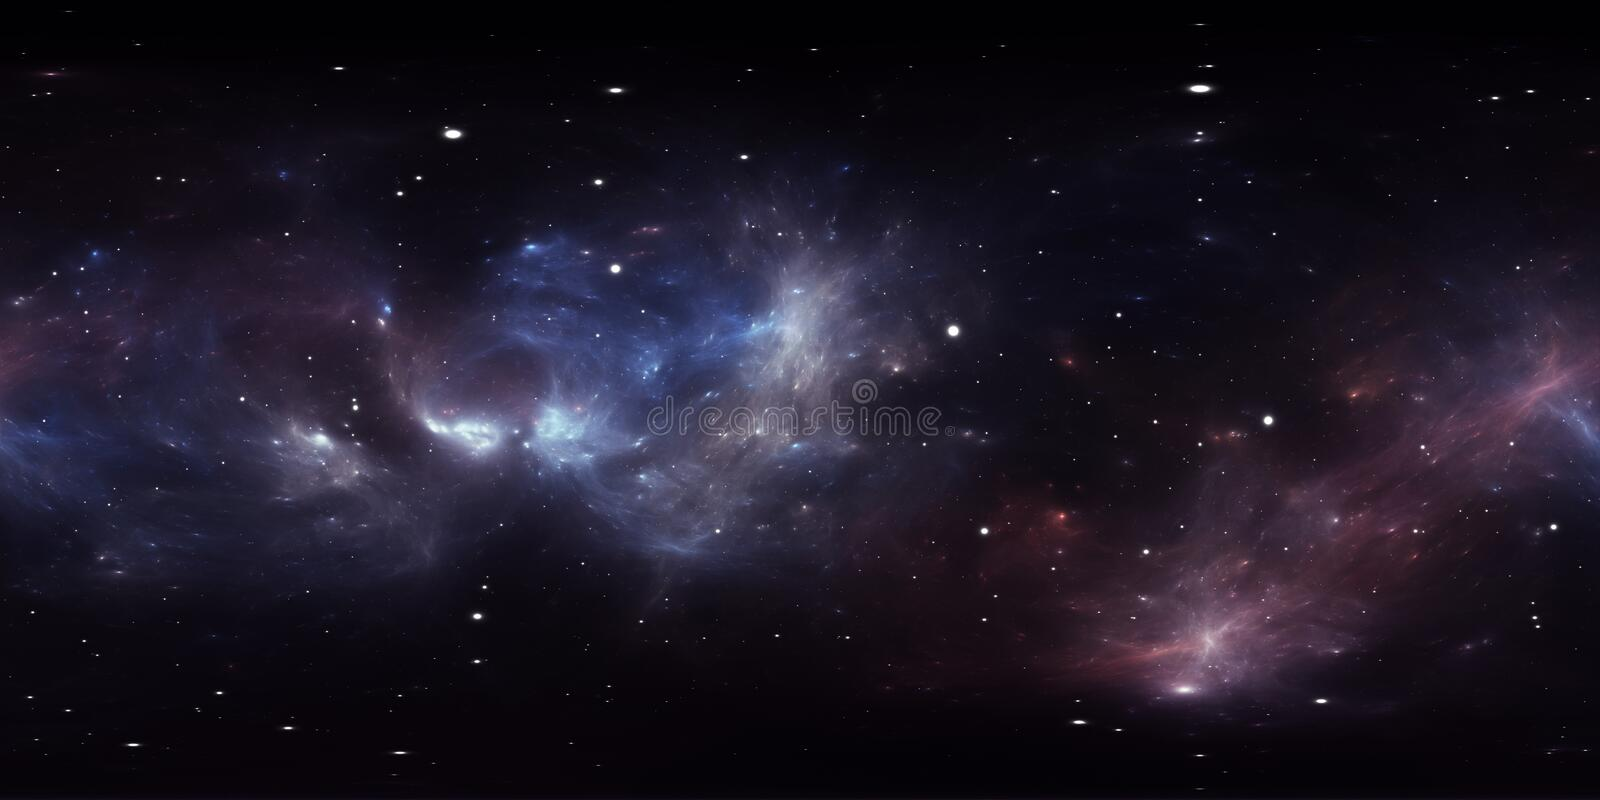 360 degree interstellar cloud of dust and gas. Space background with nebula and stars. Glowing nebula, equirectangular projection, vector illustration